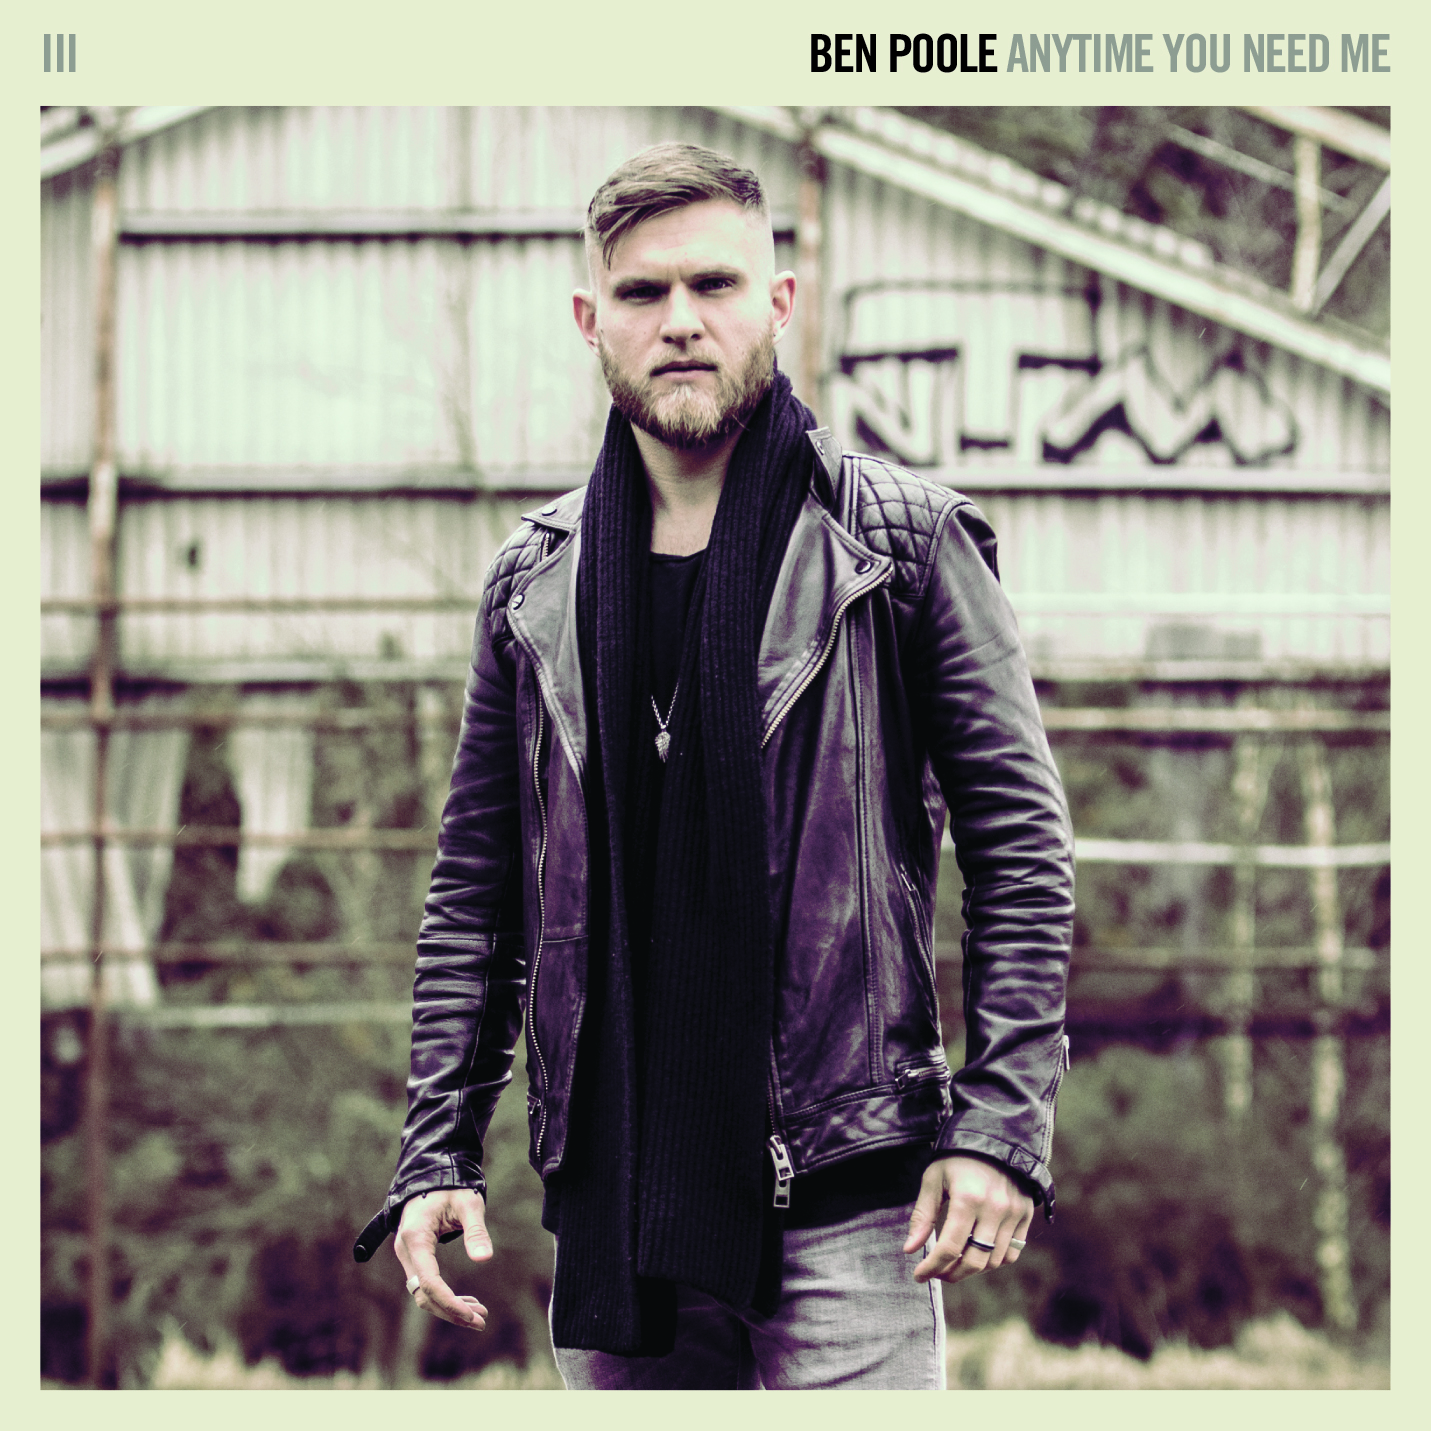 Ben Poole - 'Anytime You Need Me'